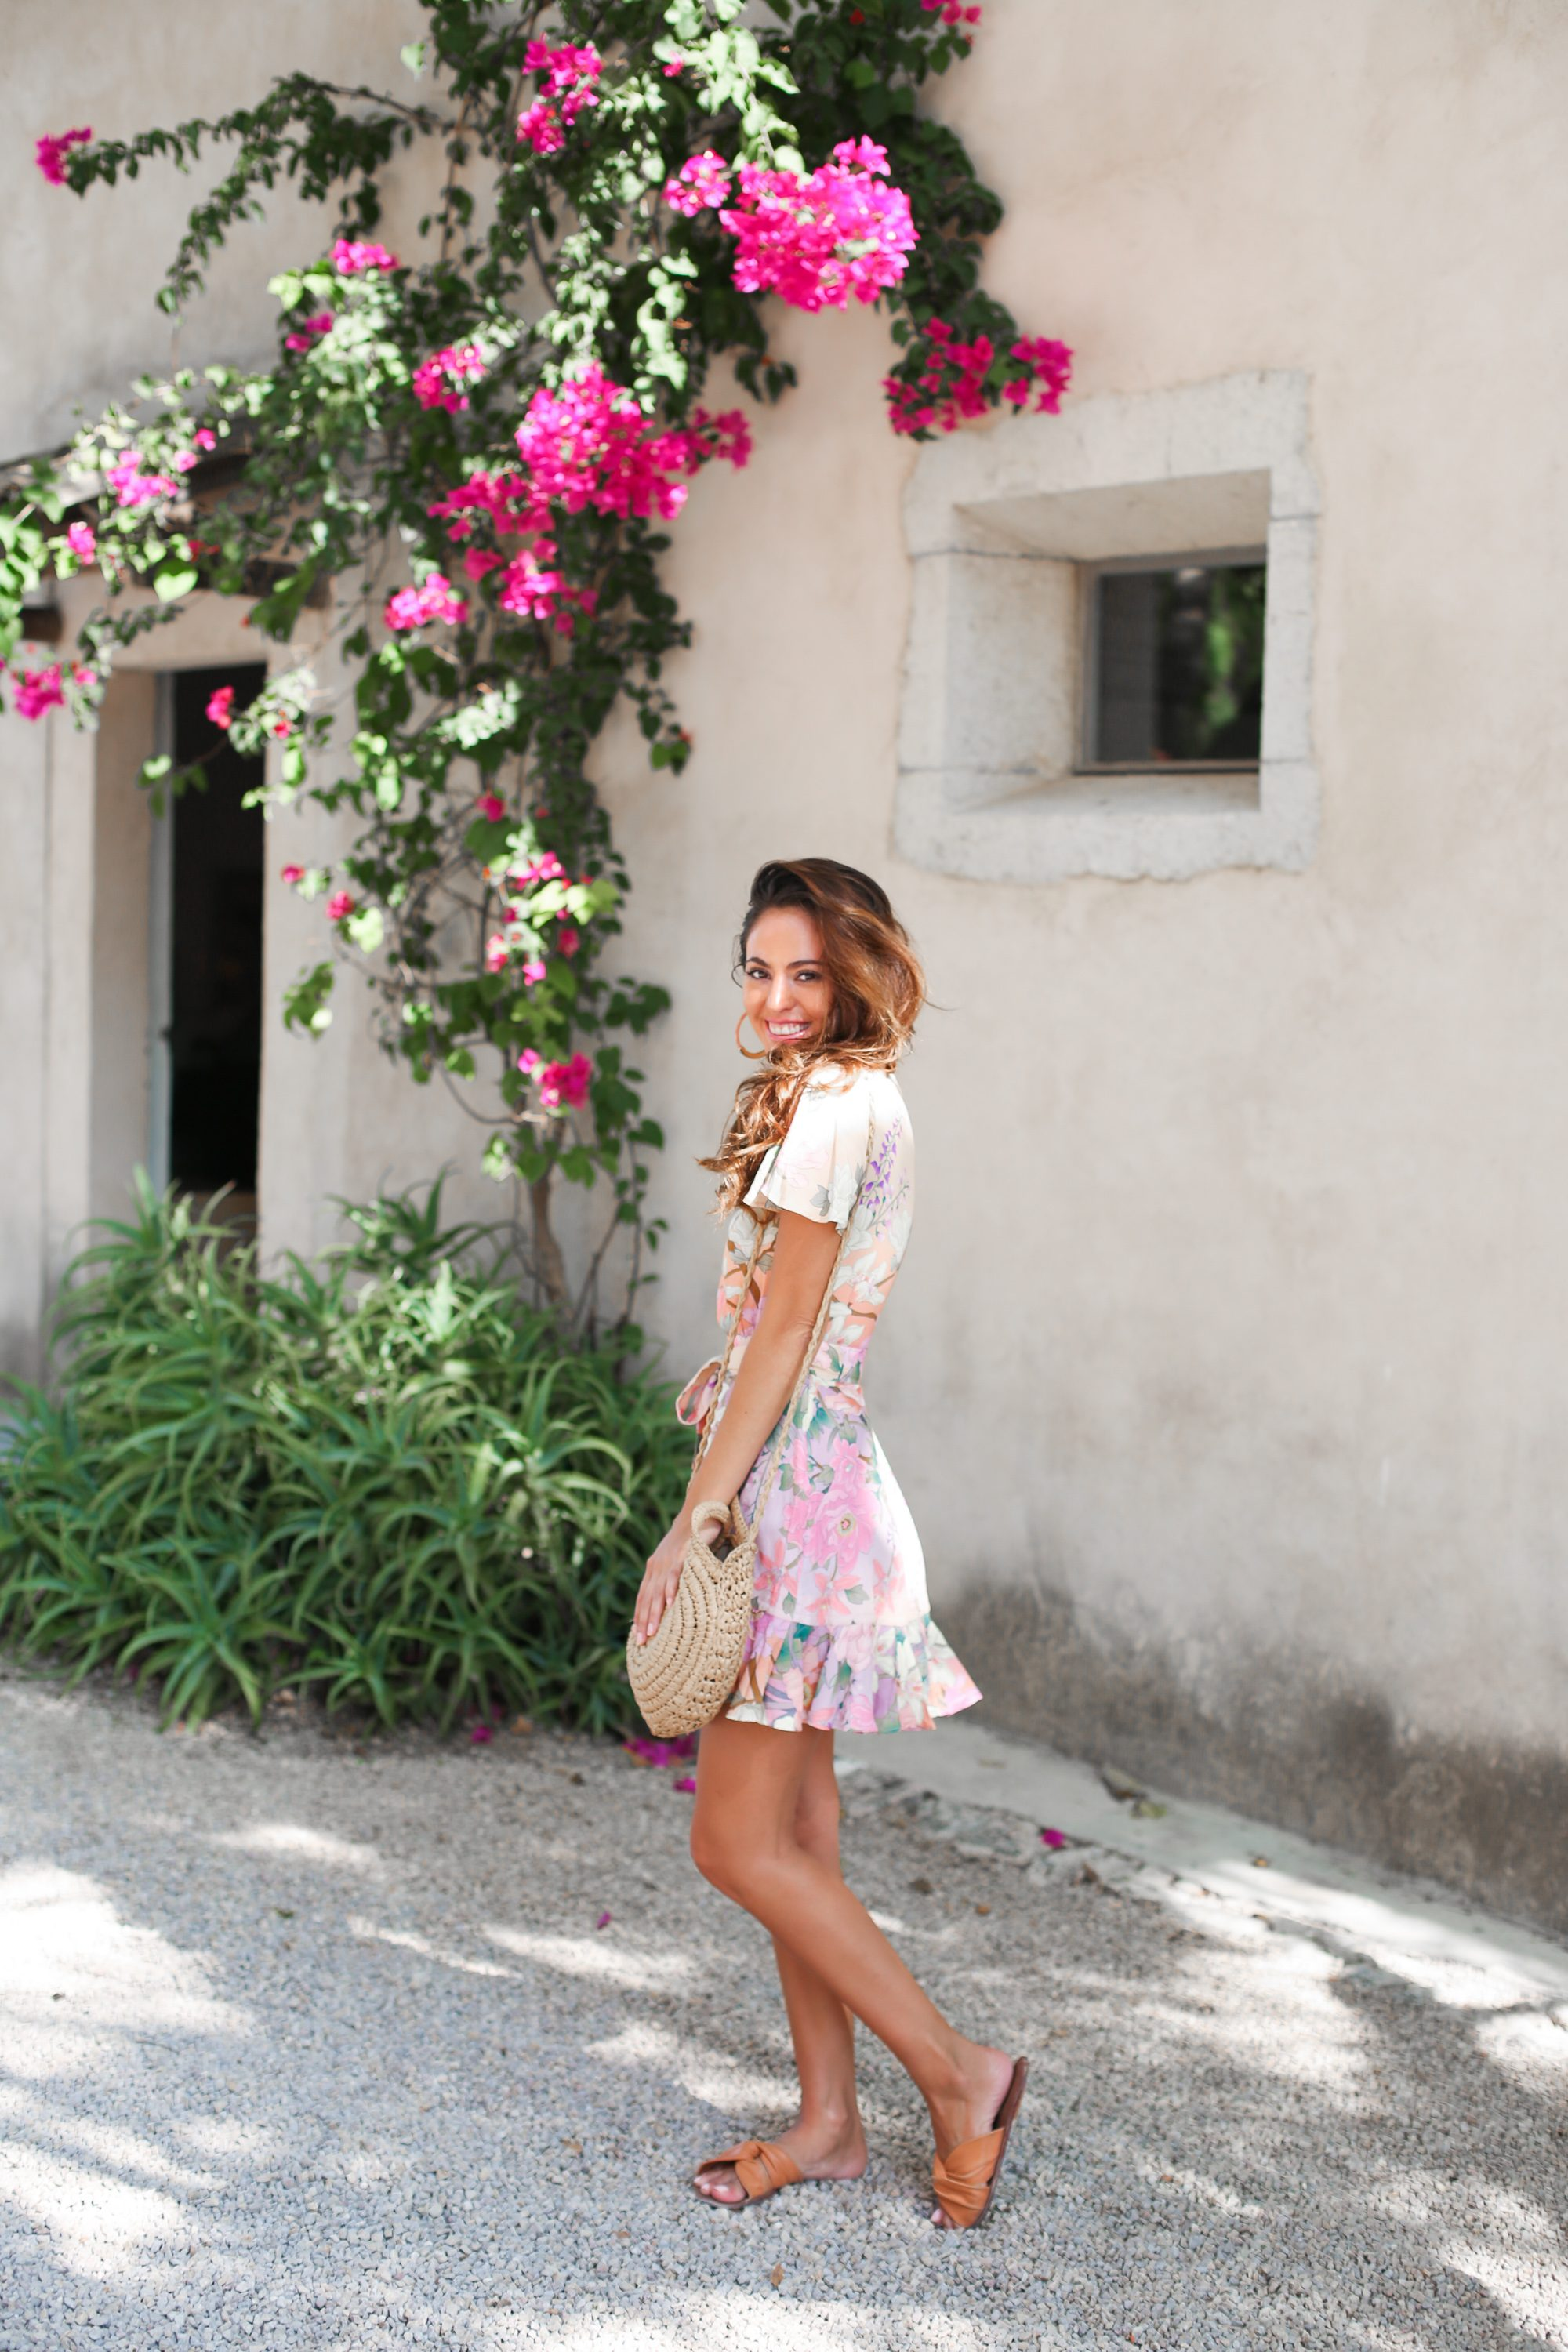 mallorca wineries, bodega ribas mallorca, spanish wineries, what to do in mallorca, spell and the gypsy collective LILY MINI DRESS, what to wear to a winery, summer sundress, spanish wine